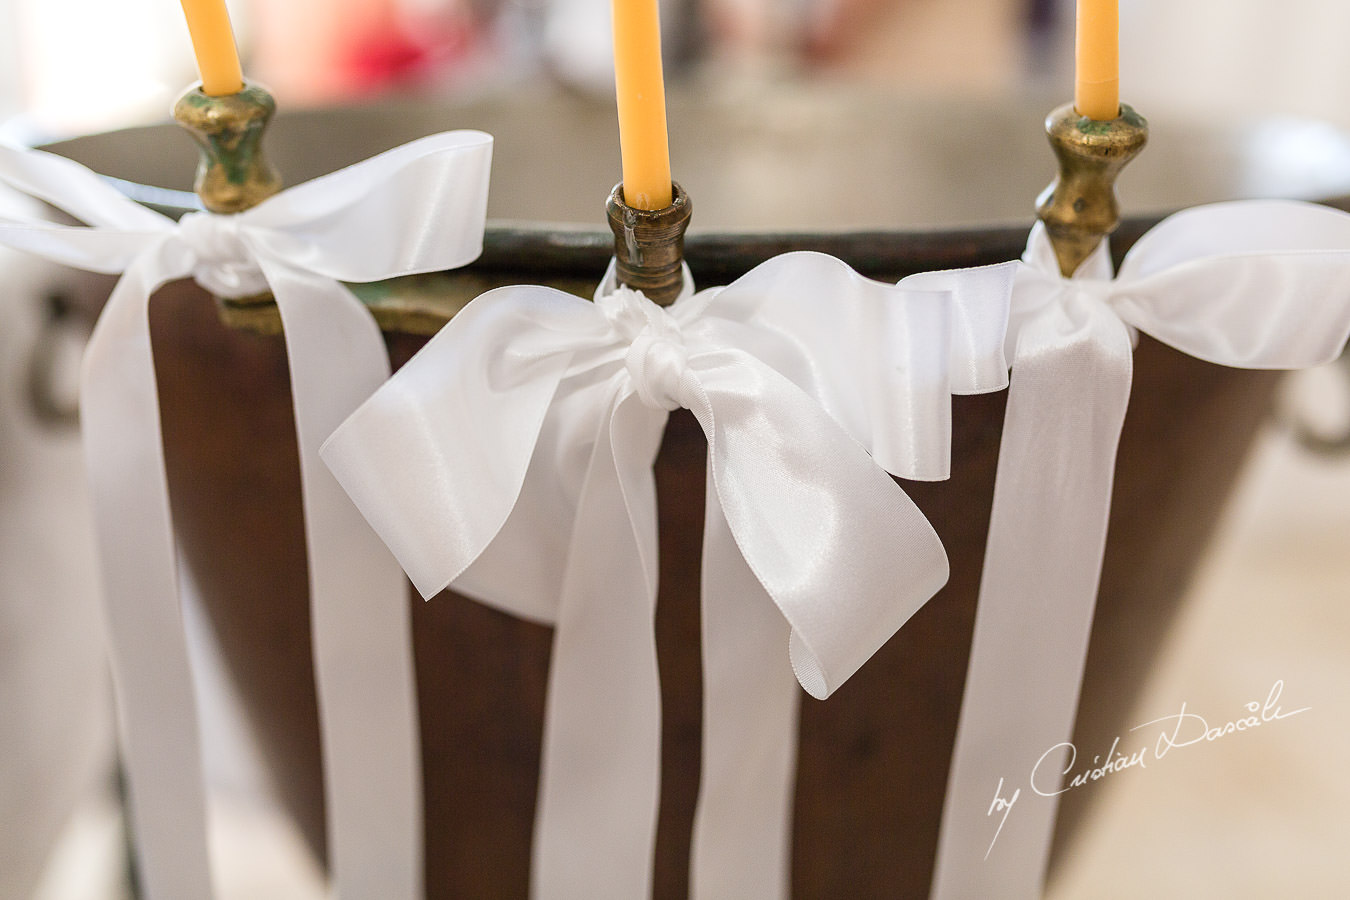 Christening details at the beautiful Anassa Hotel photographed by Cyprus Photographer Cristian Dascalu.